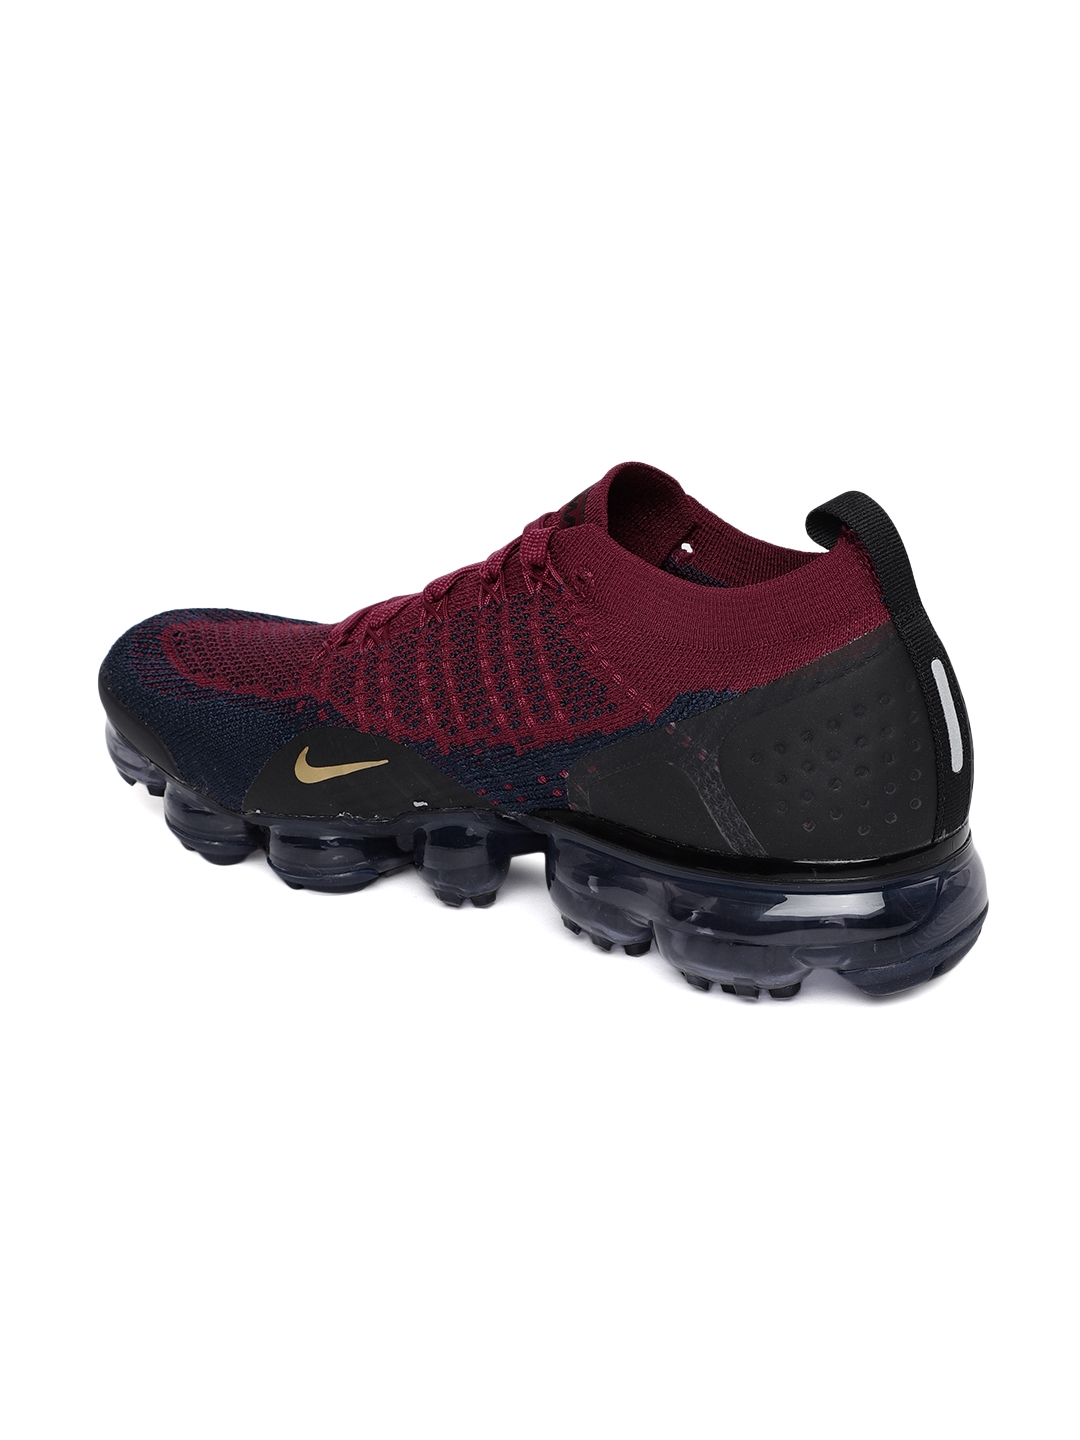 02a497776b Buy Nike Men Maroon   Blue Air Vapormax Flyknit 2 Running Shoes ...